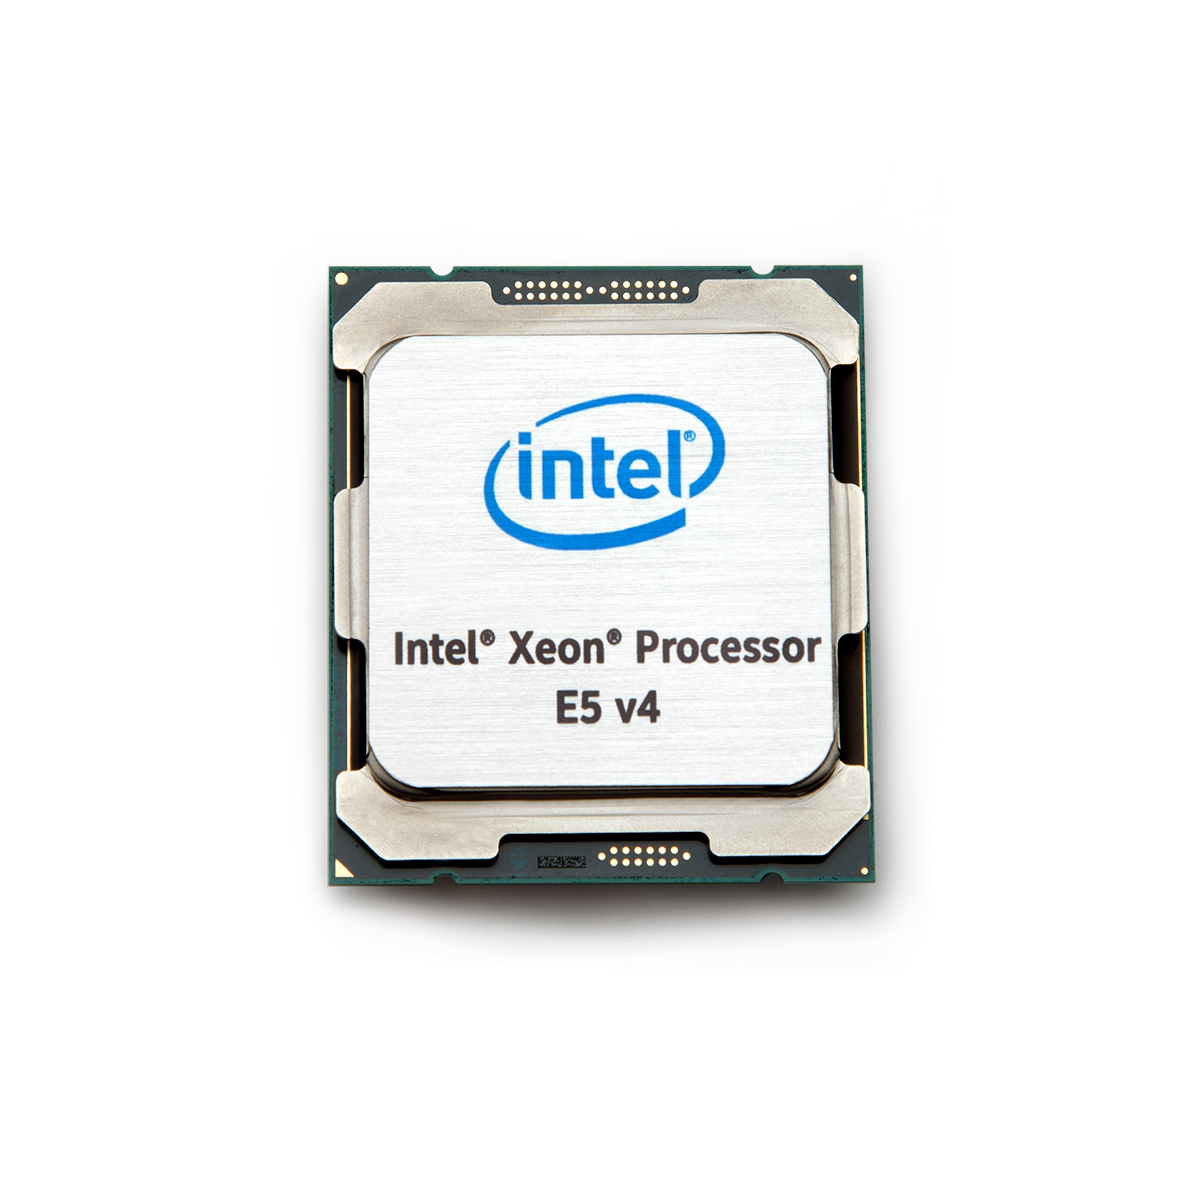 Intel® Xeon® processor E5-2600 v4 CPU front view